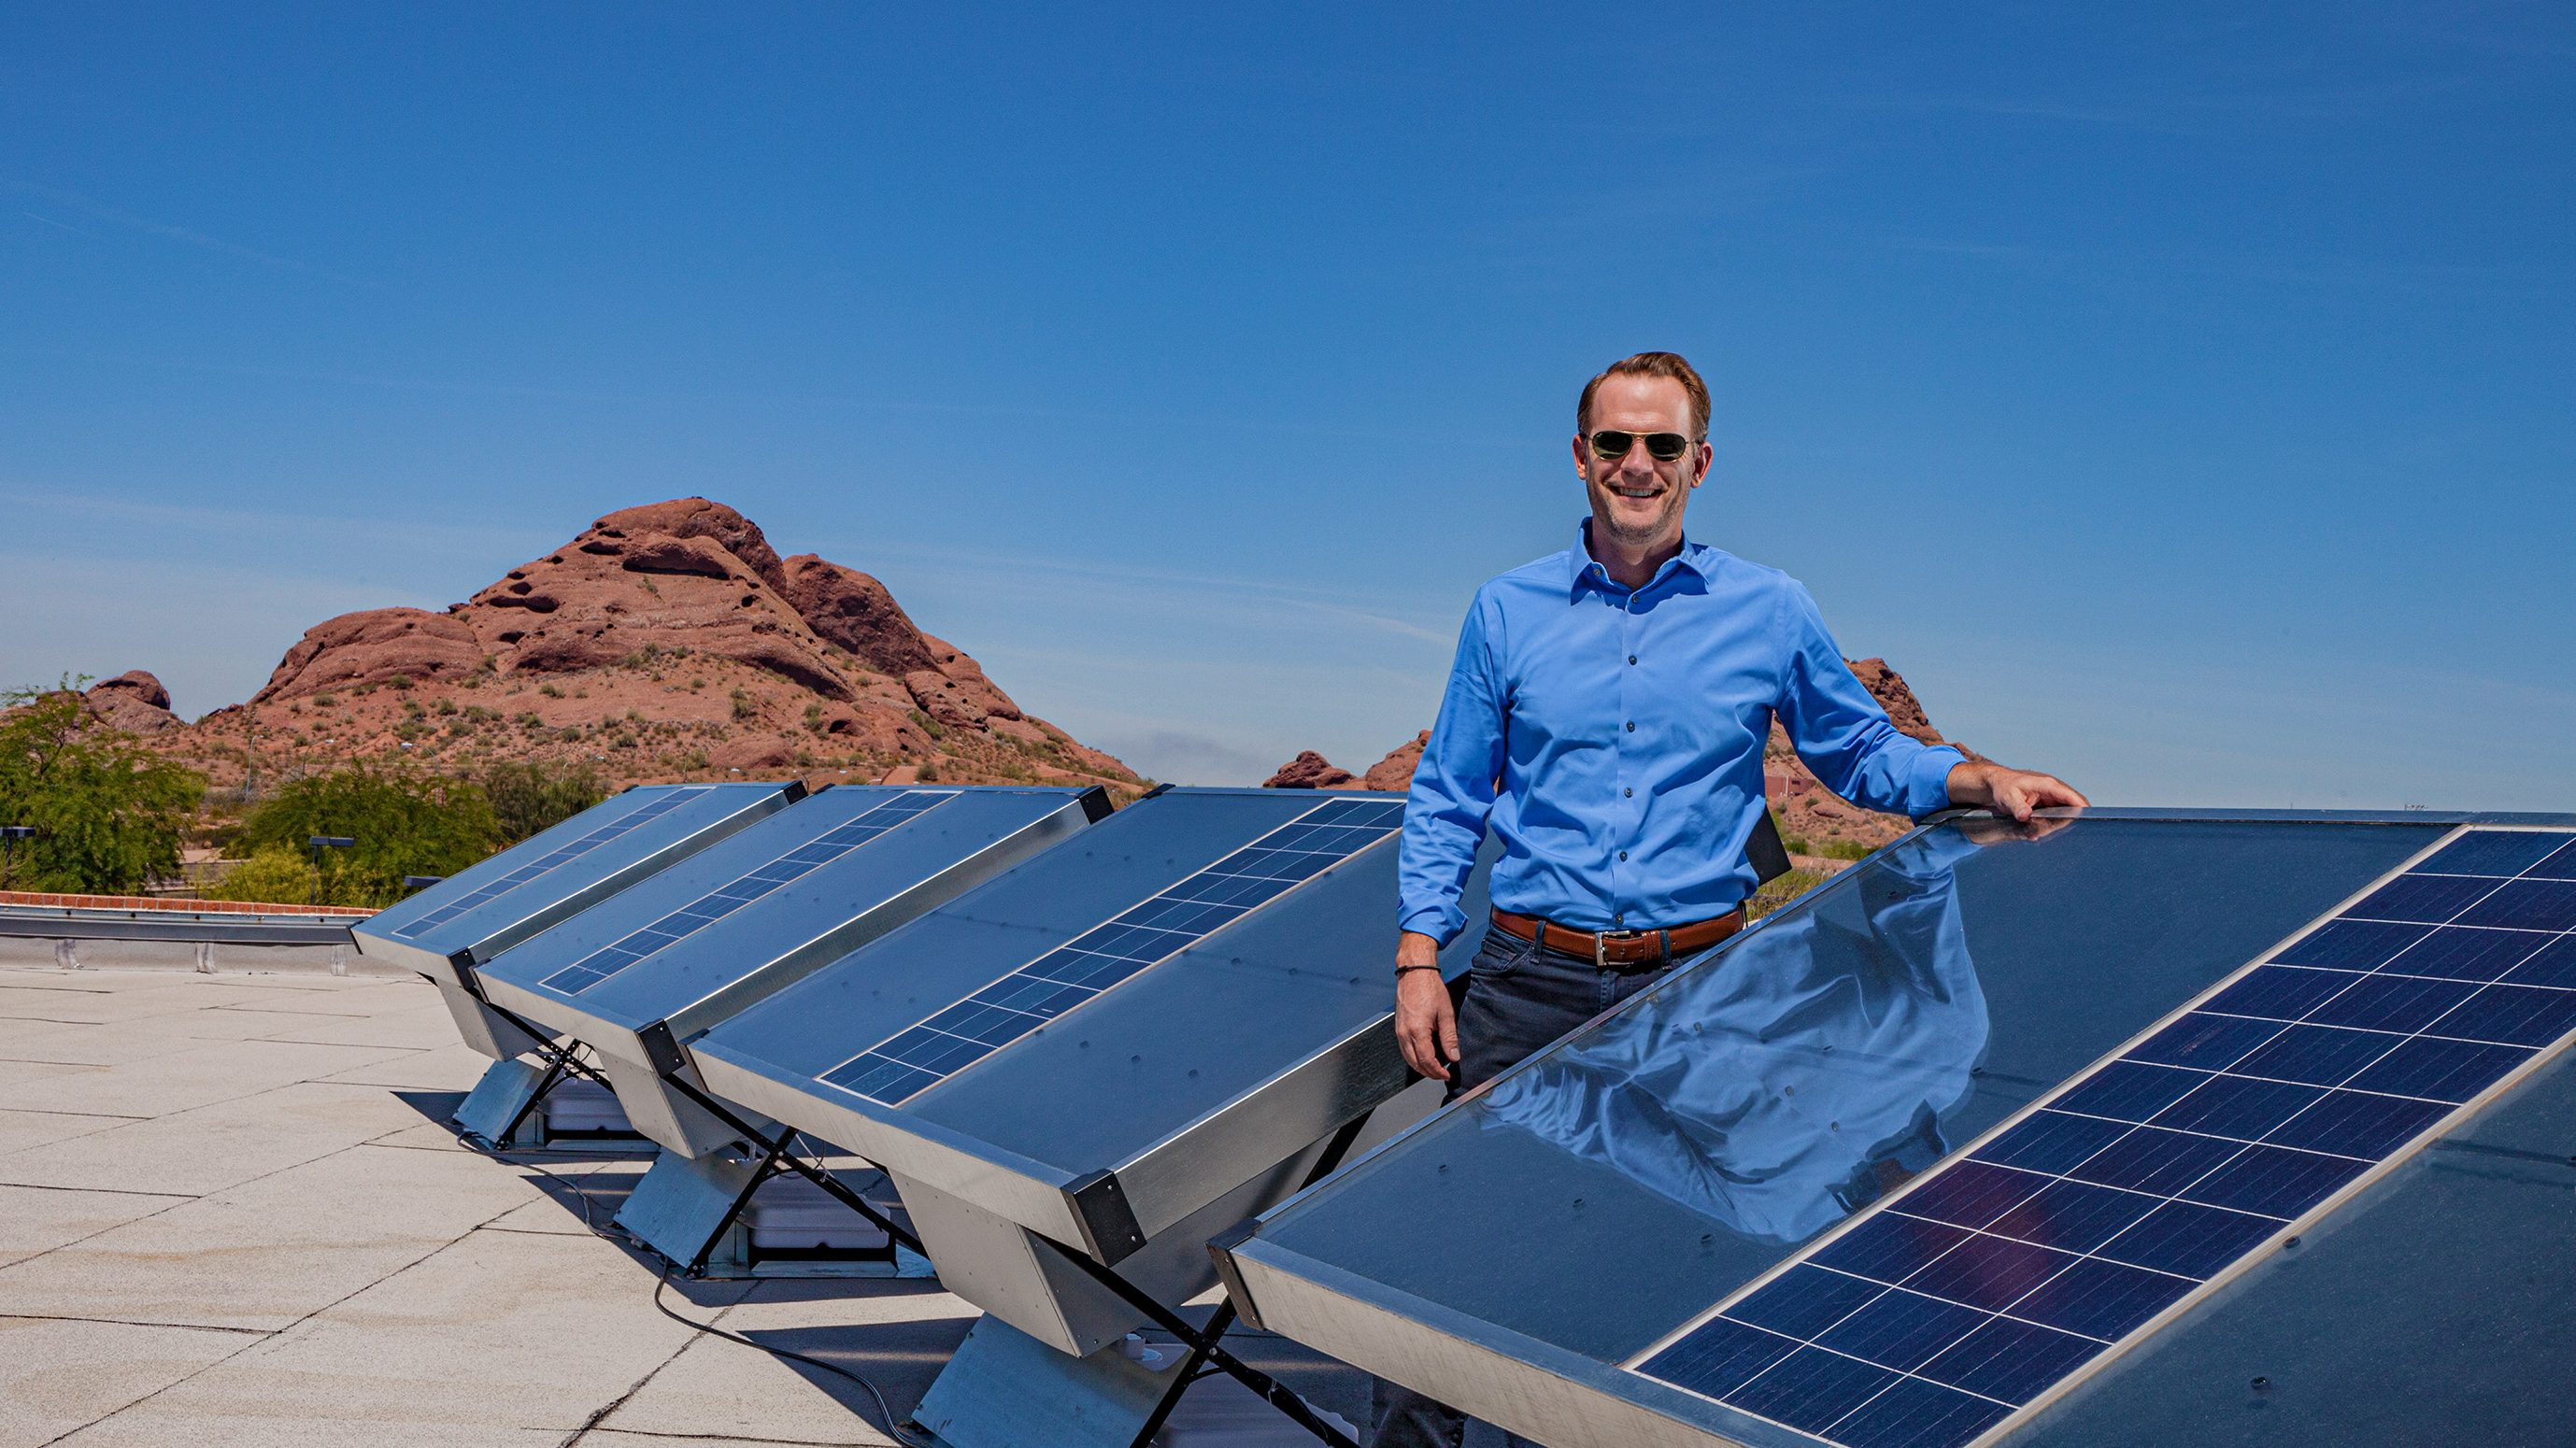 Cody Friesen, PhD '04, invented panels that harvest water from the air—even in arid Arizona. And that's after he'd figured out how to make rechargeable high-energy batteries that are cheap and eco-friendly.